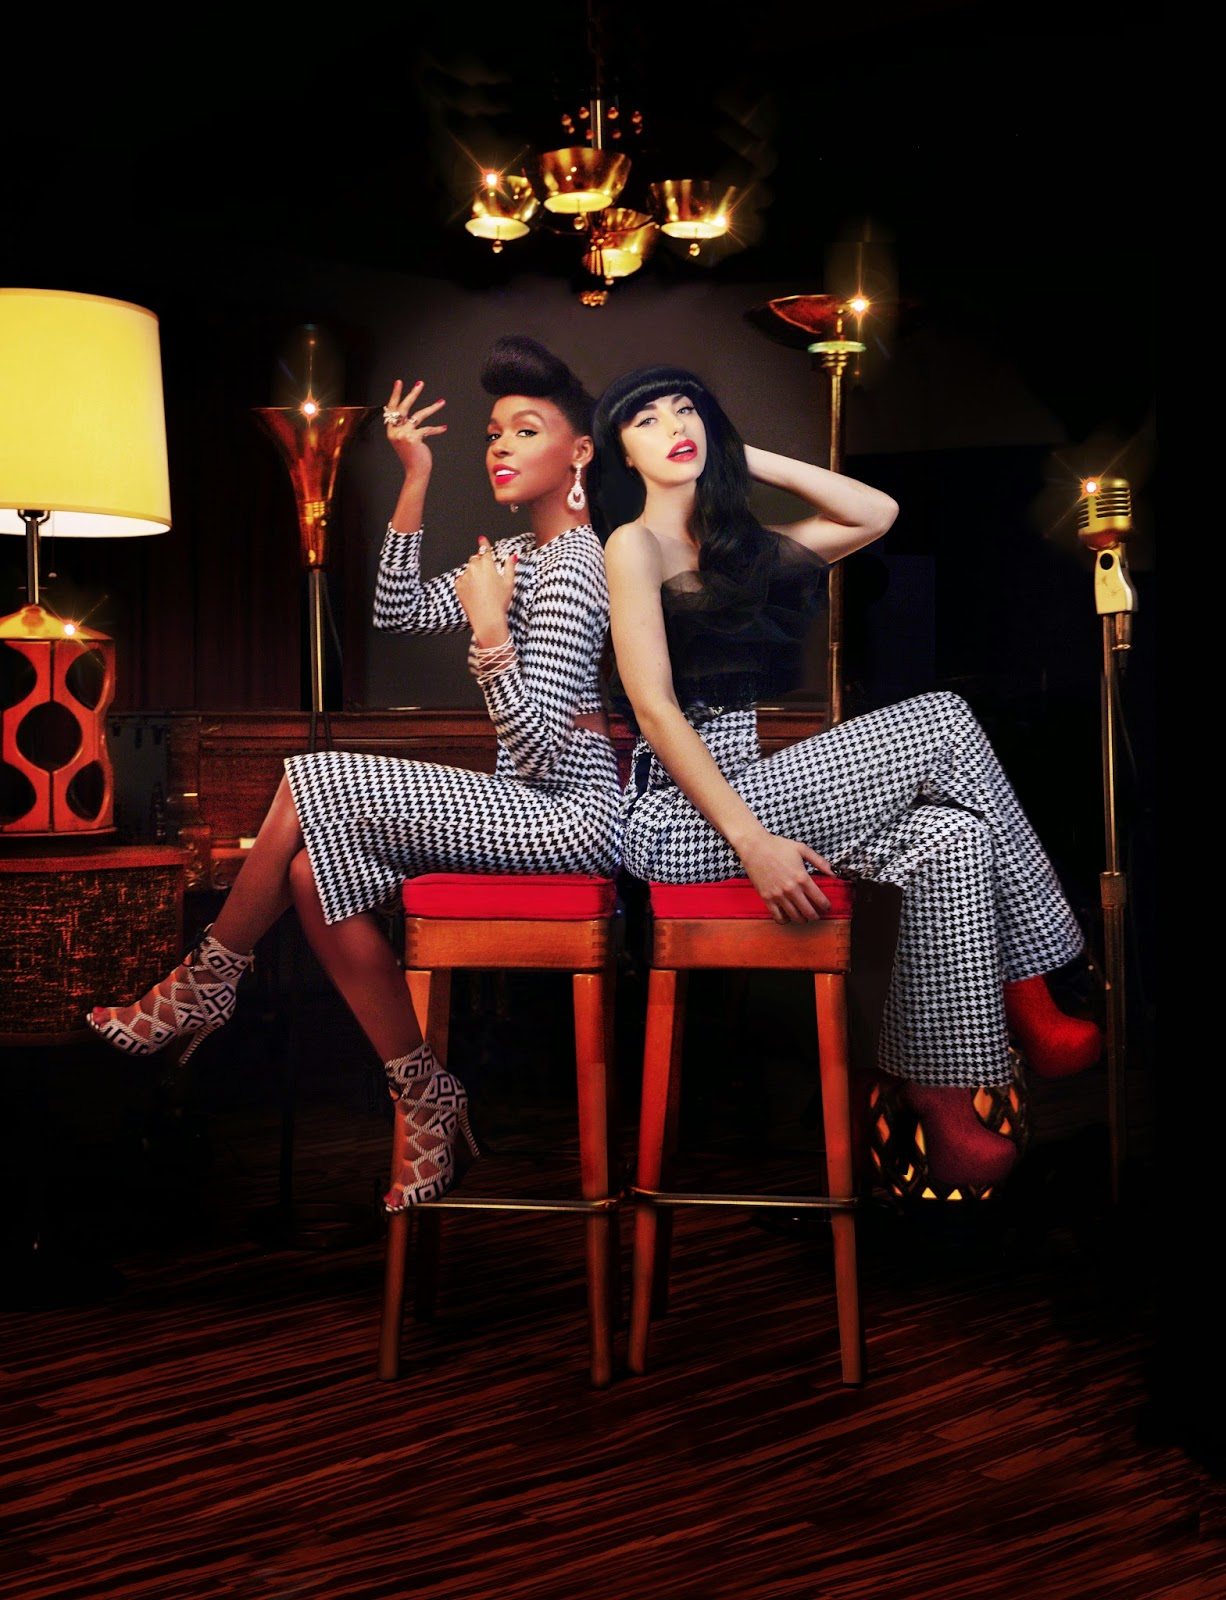 The Golden Electric Tour - Kimbra and Janelle Monae by Thom Kerr